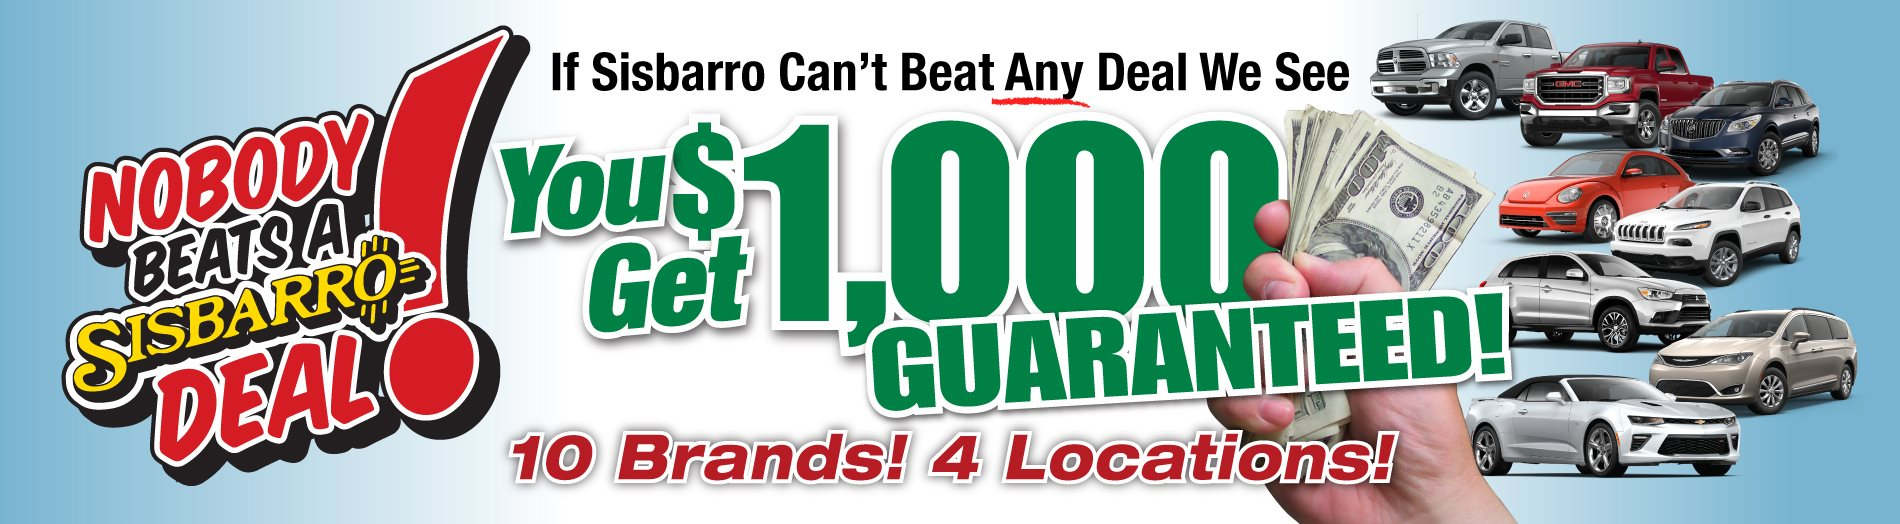 Sisbarro Deal -$1000 Guaranteed